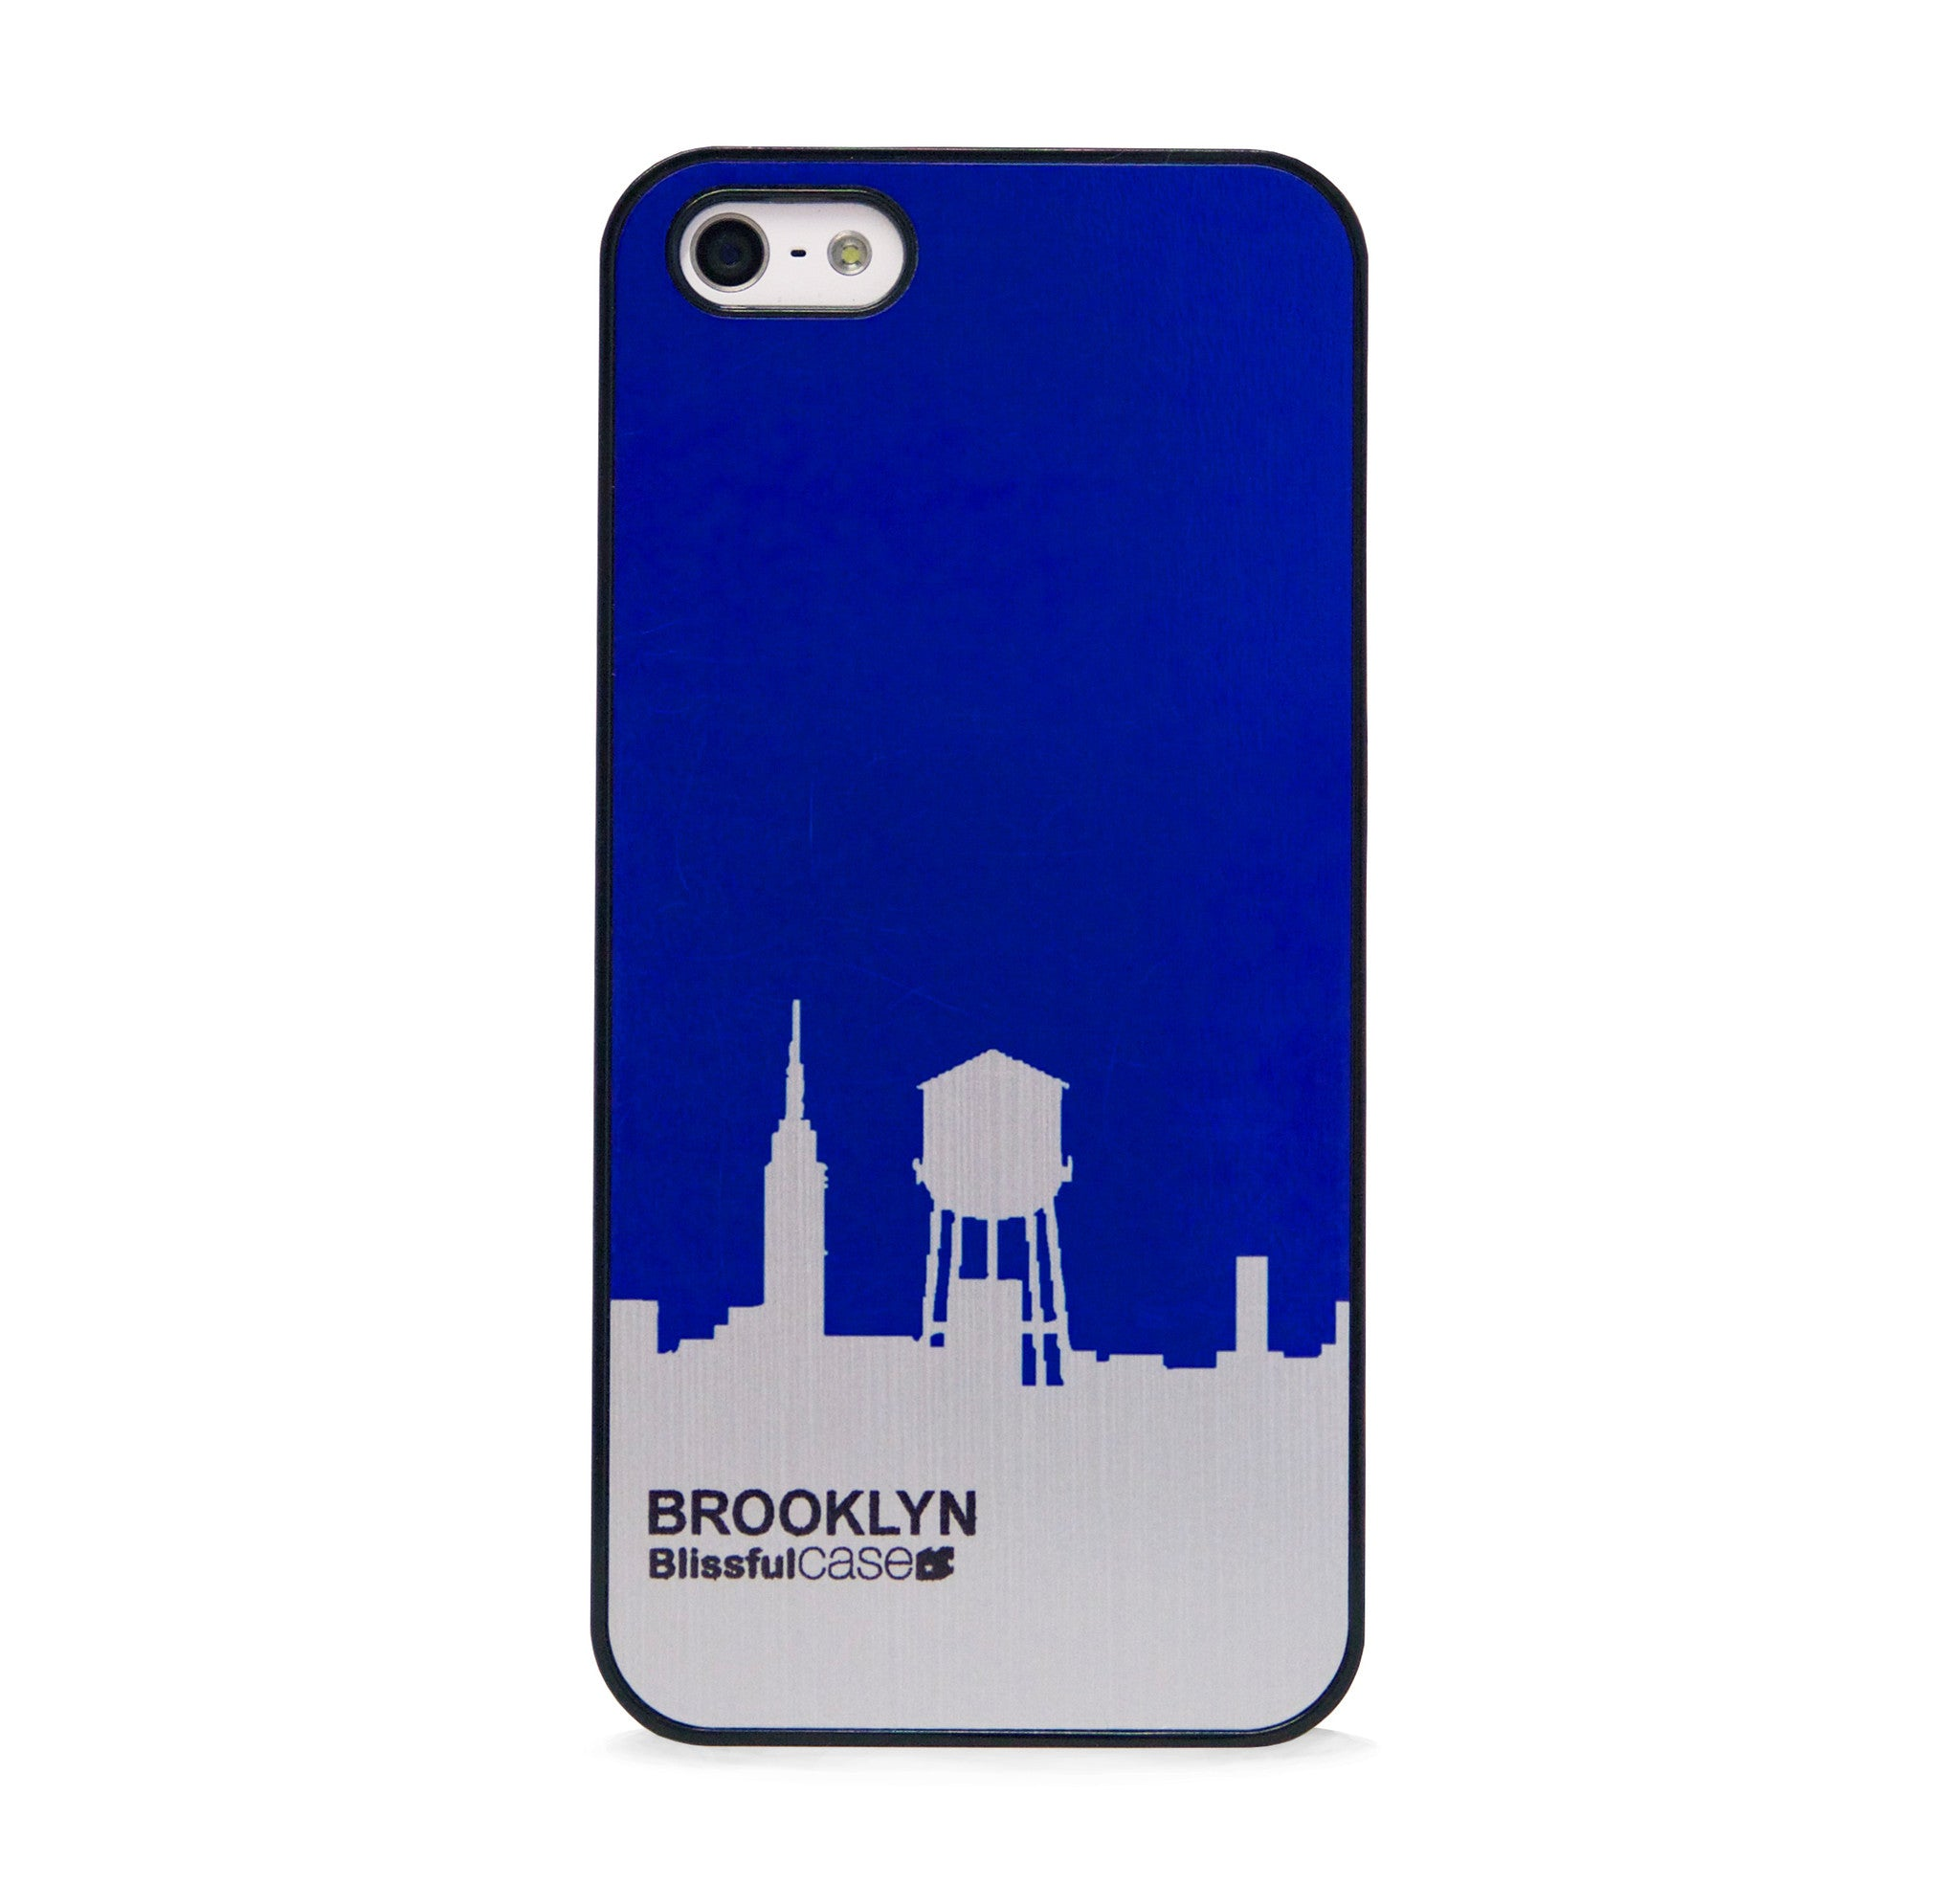 BROOKLYN BLUE FOR IPHONE 5/5S, IPHONE SE